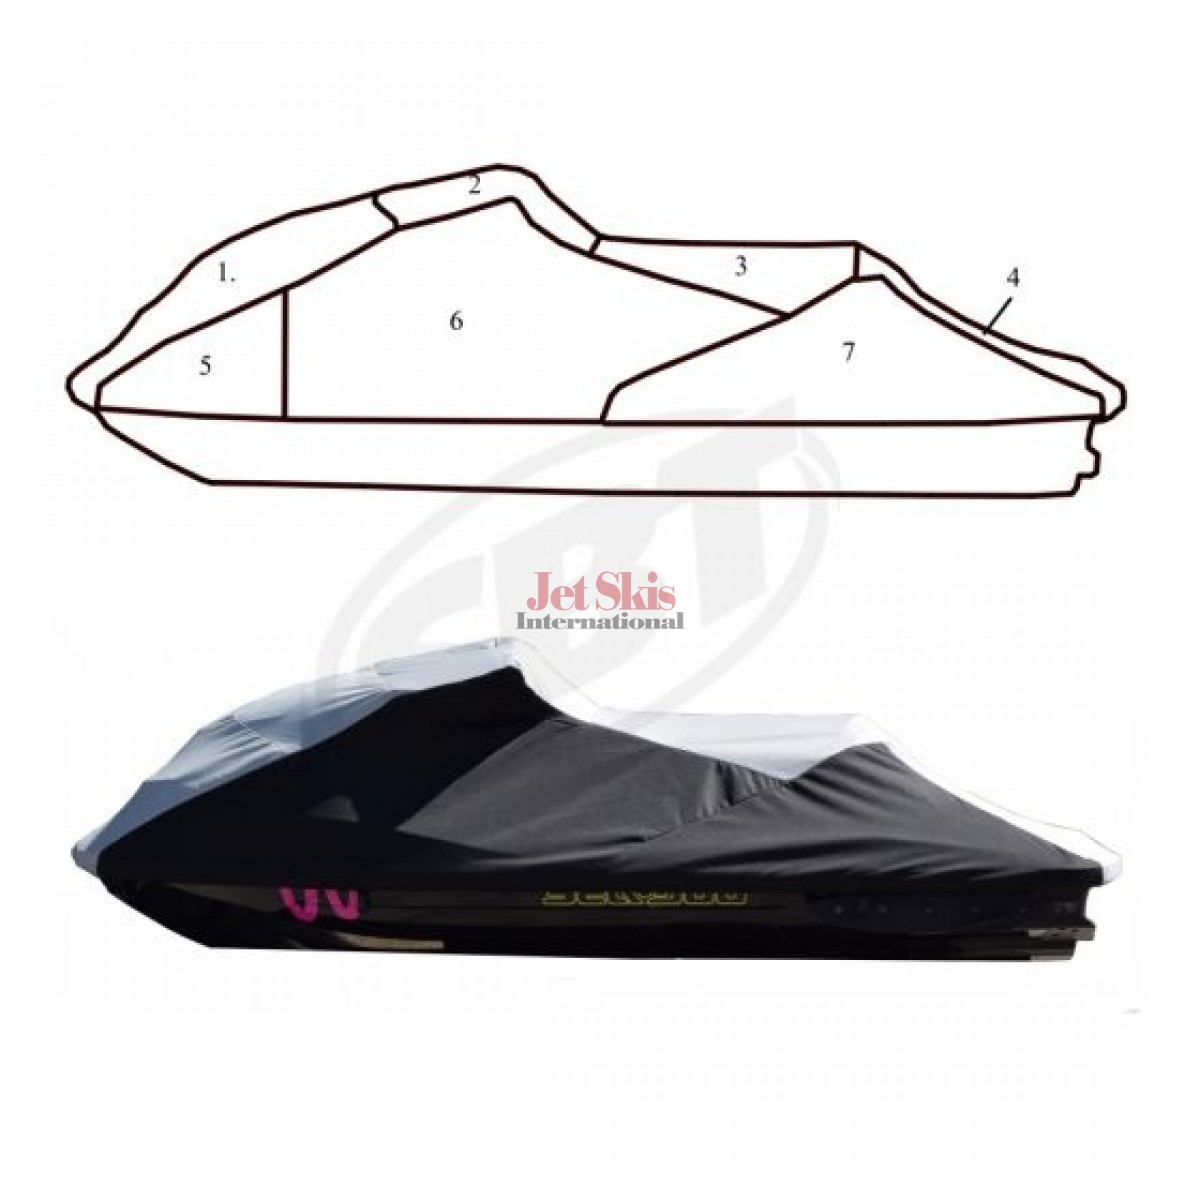 hight resolution of sea doo rxt x 260 gtr x storage cover 111ws116 c